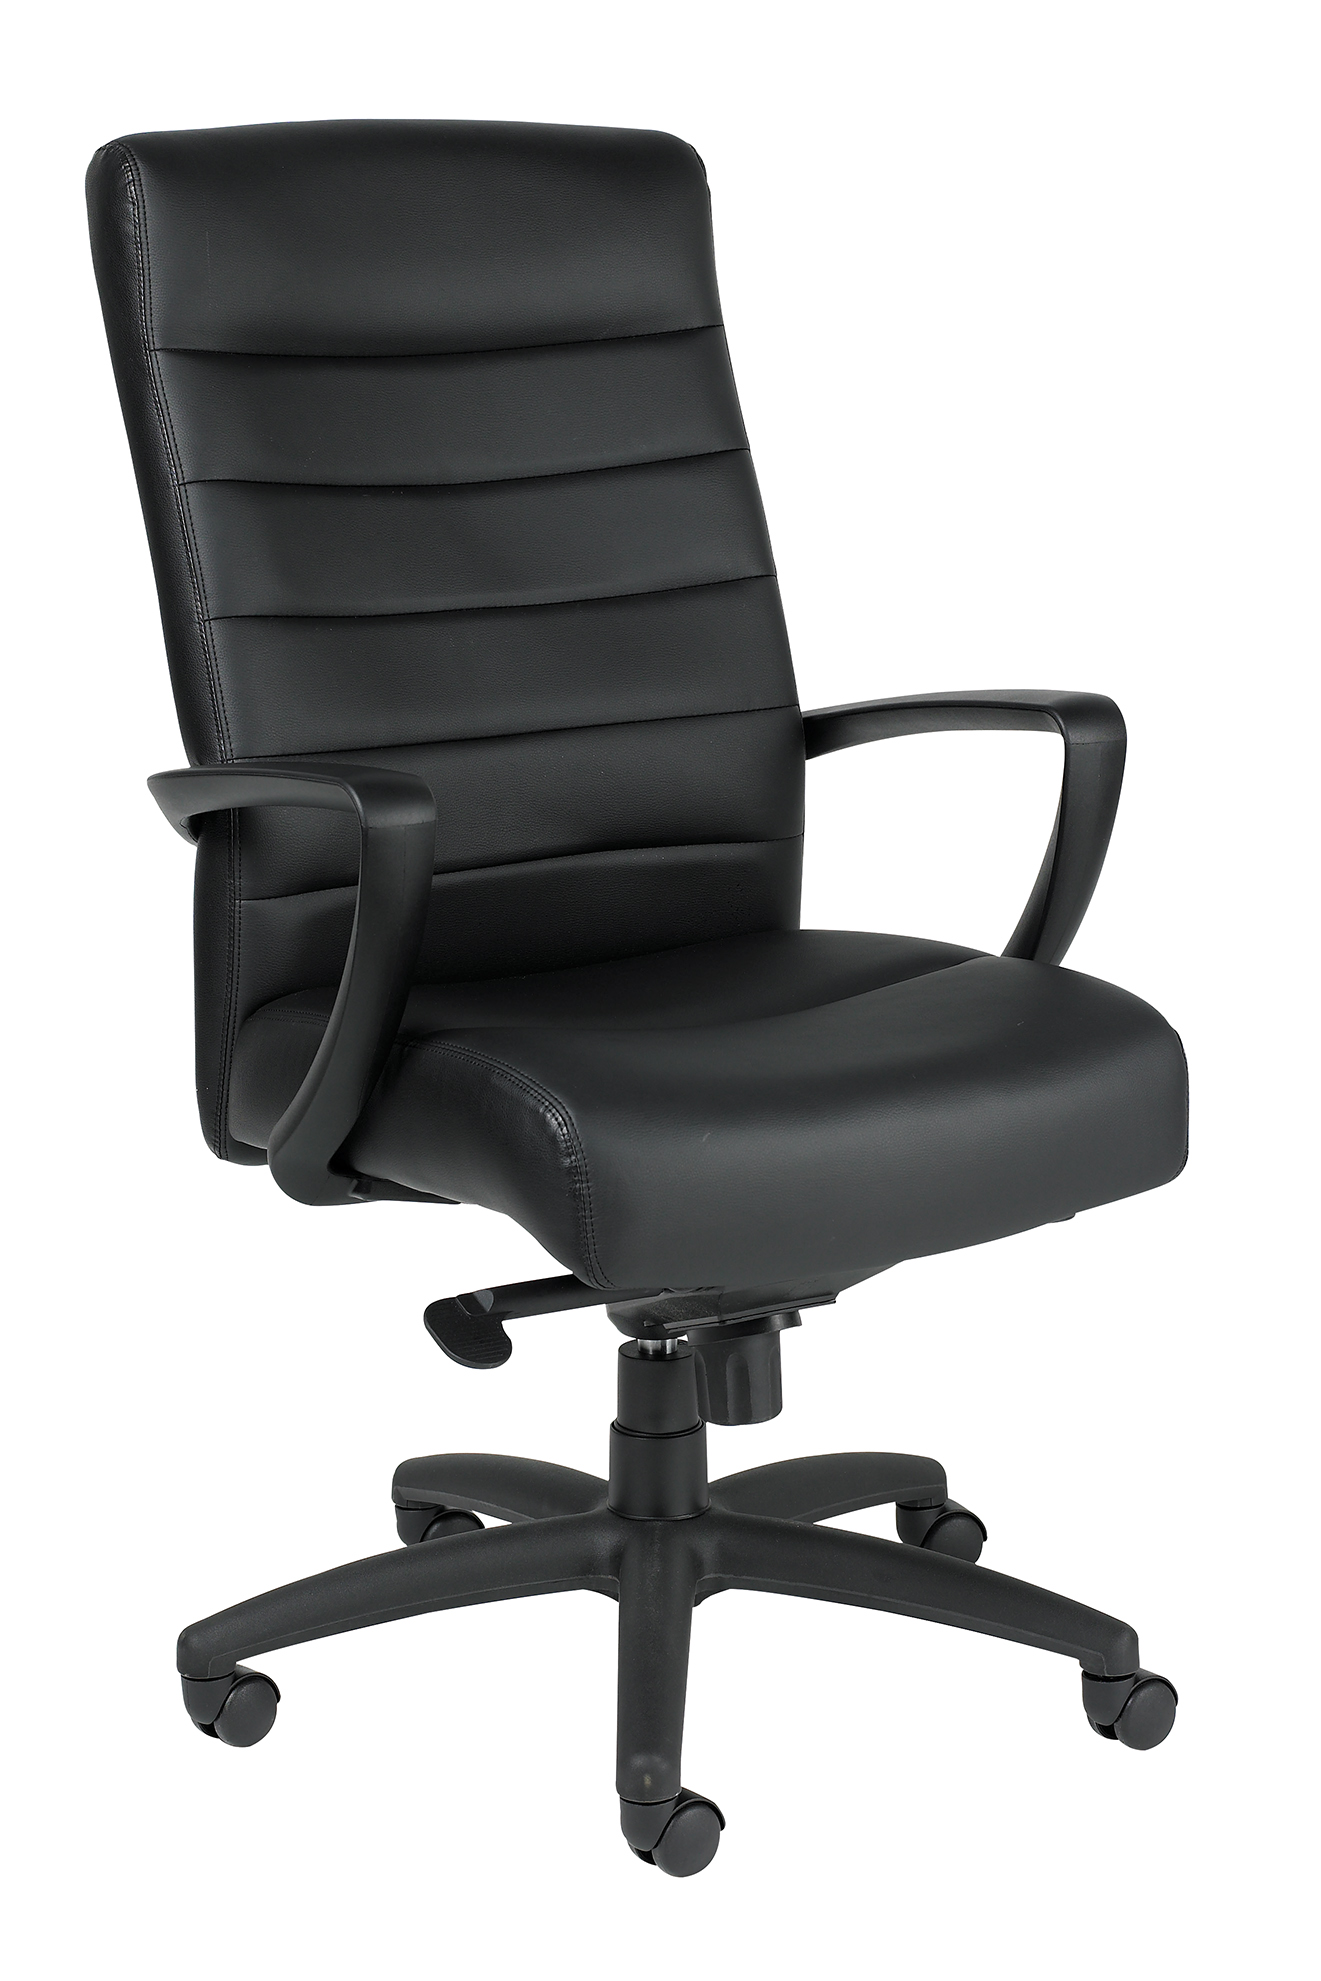 Eurotech Manchester High Back Black Leather